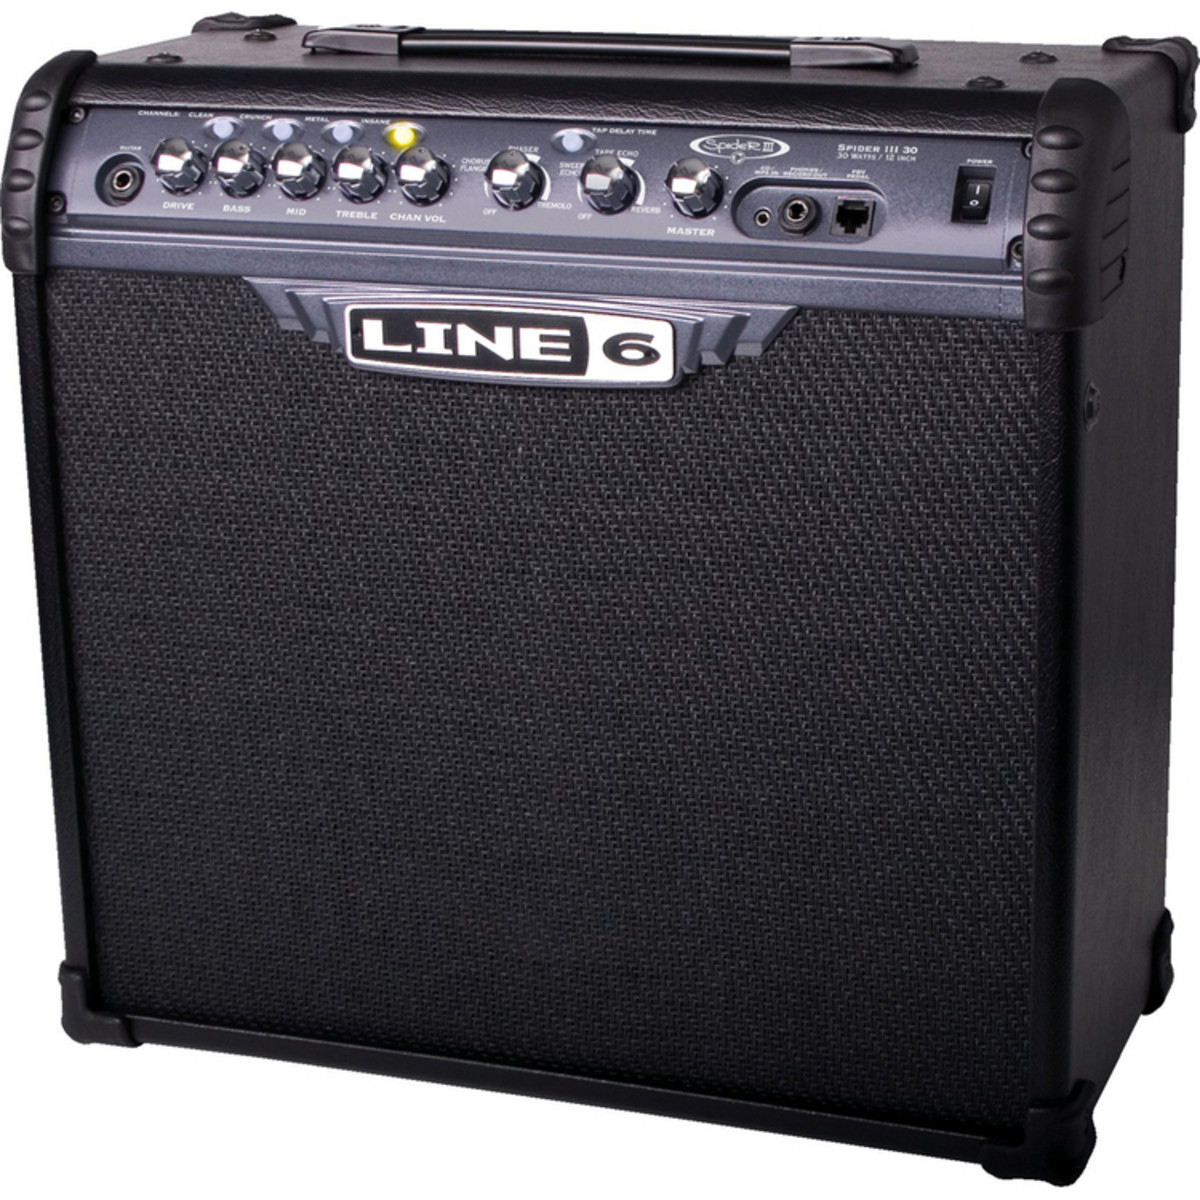 line 6 spider iii 30 watt combo guitar amplifier at gear4music. Black Bedroom Furniture Sets. Home Design Ideas